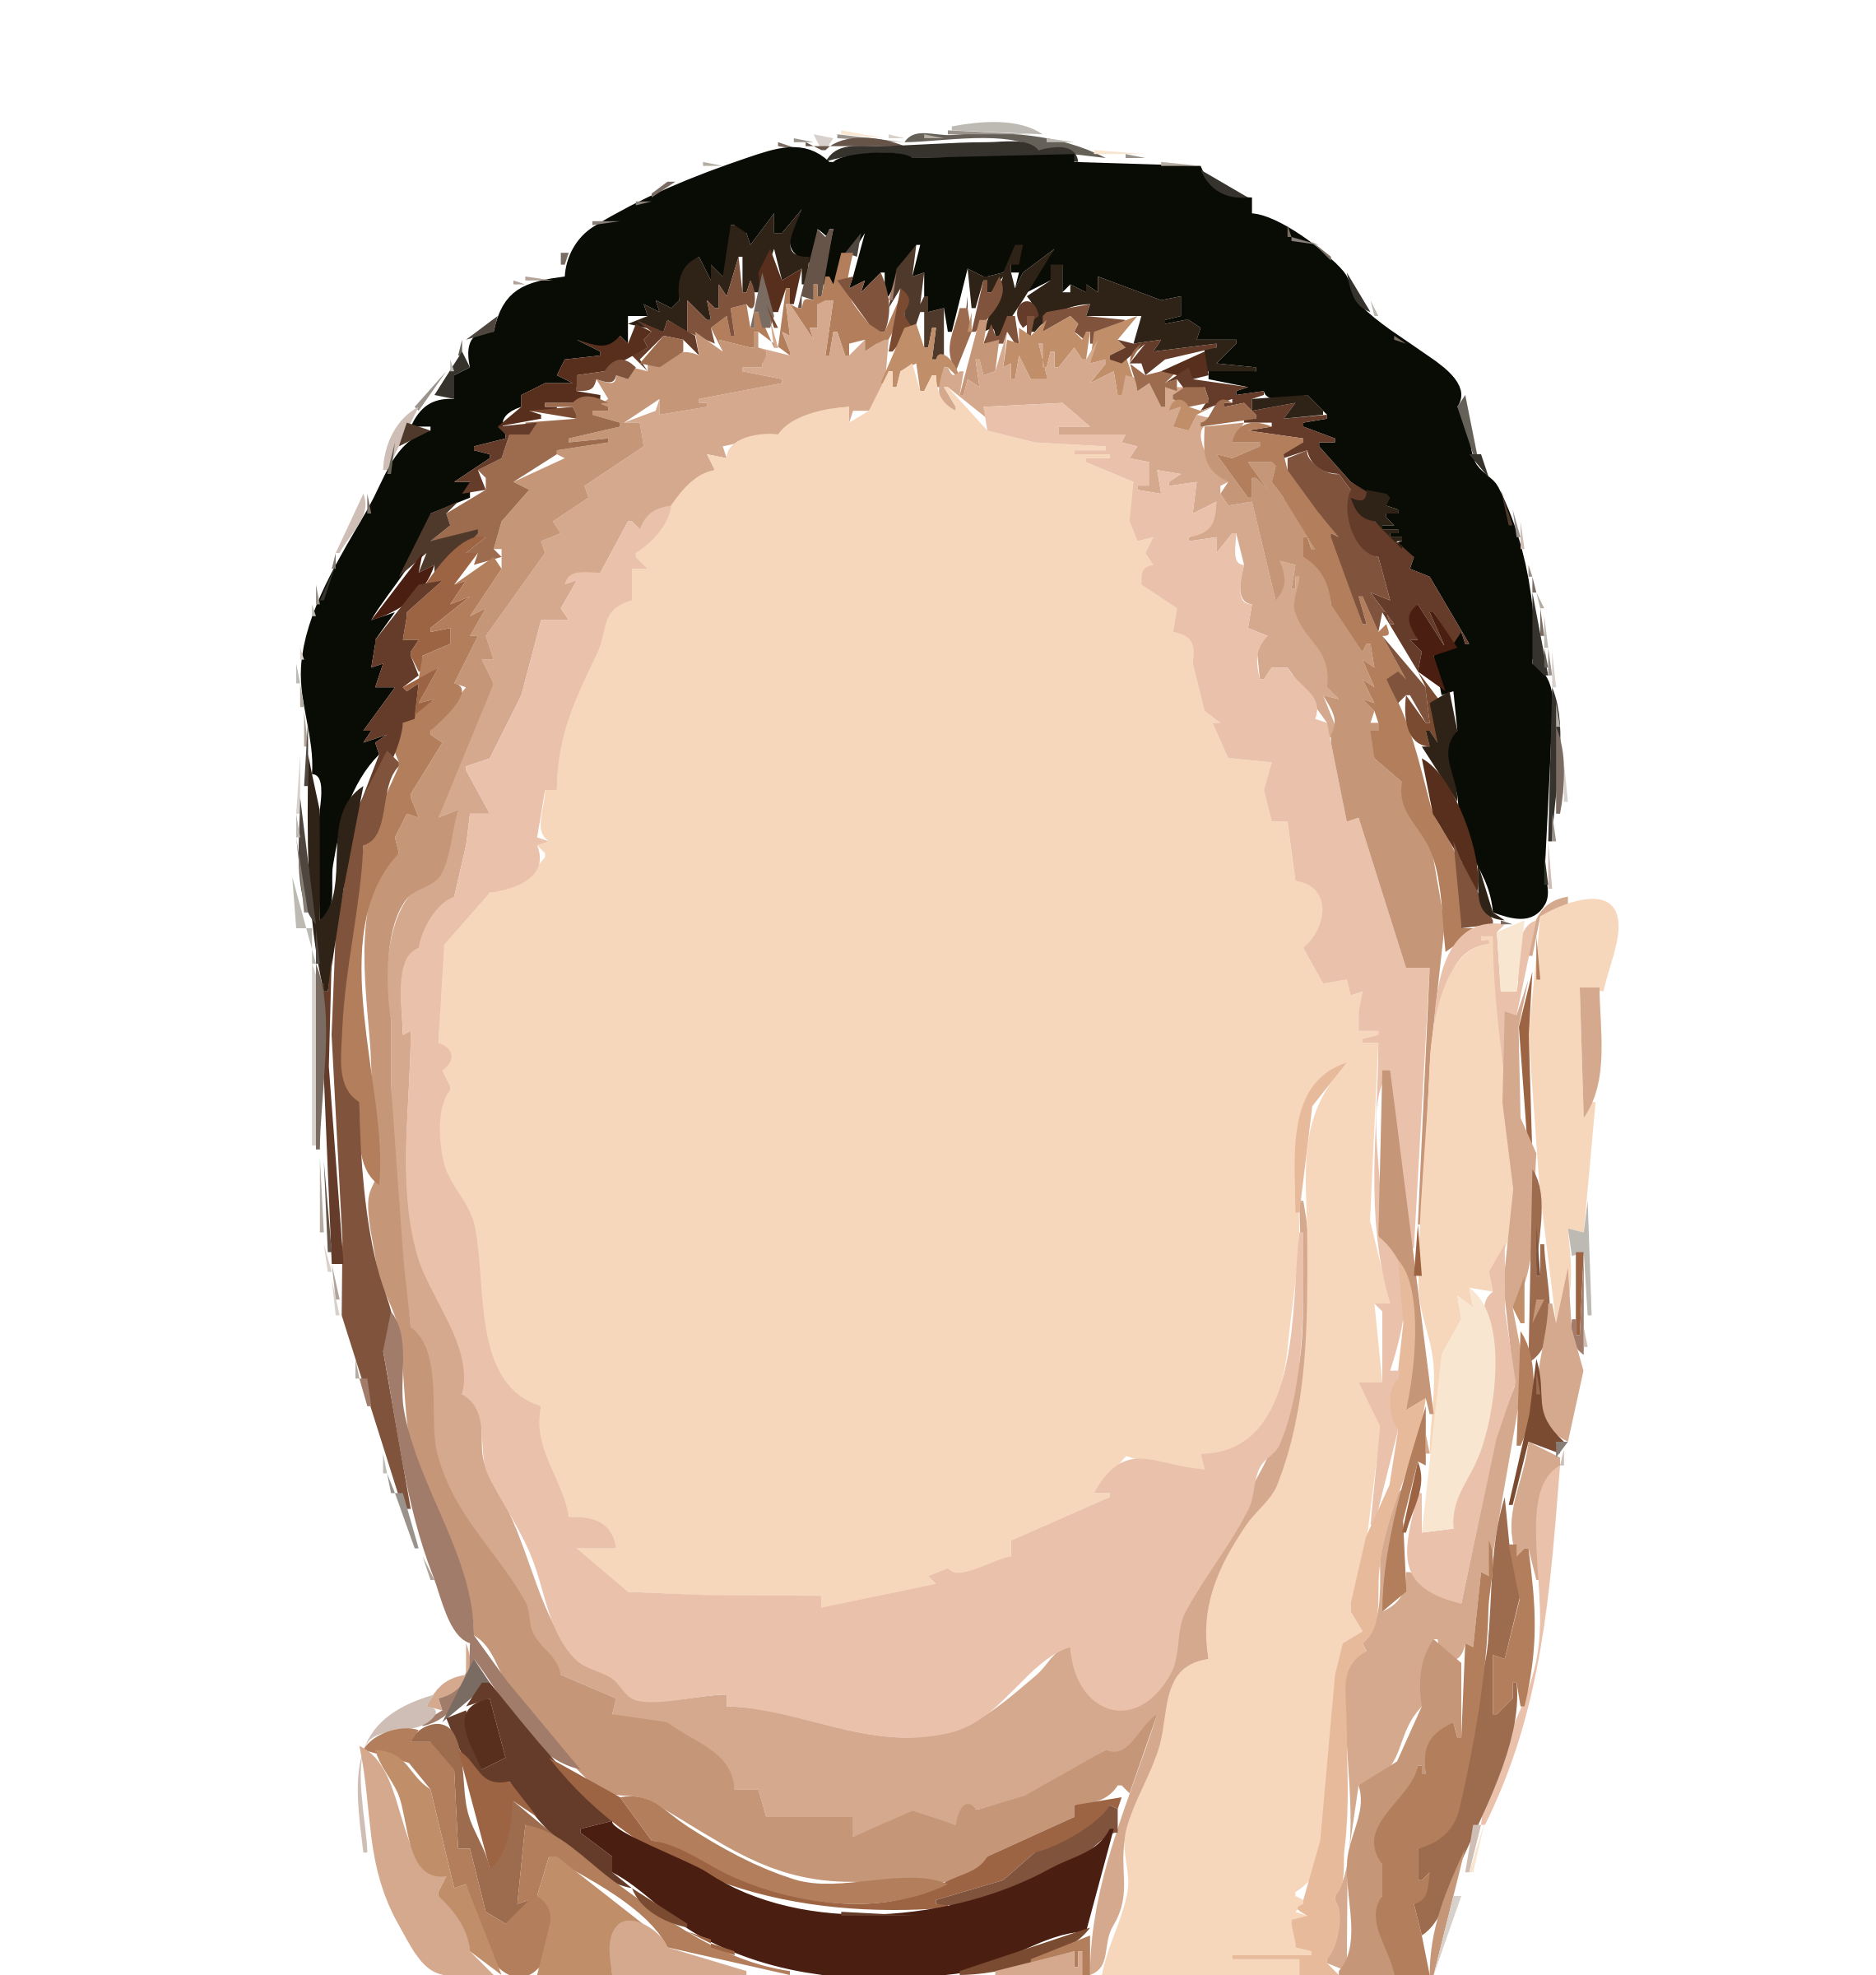 Faceless Remix (Non-Derp Face) Vectorized by 5mgnde+4irfsi8q3963g